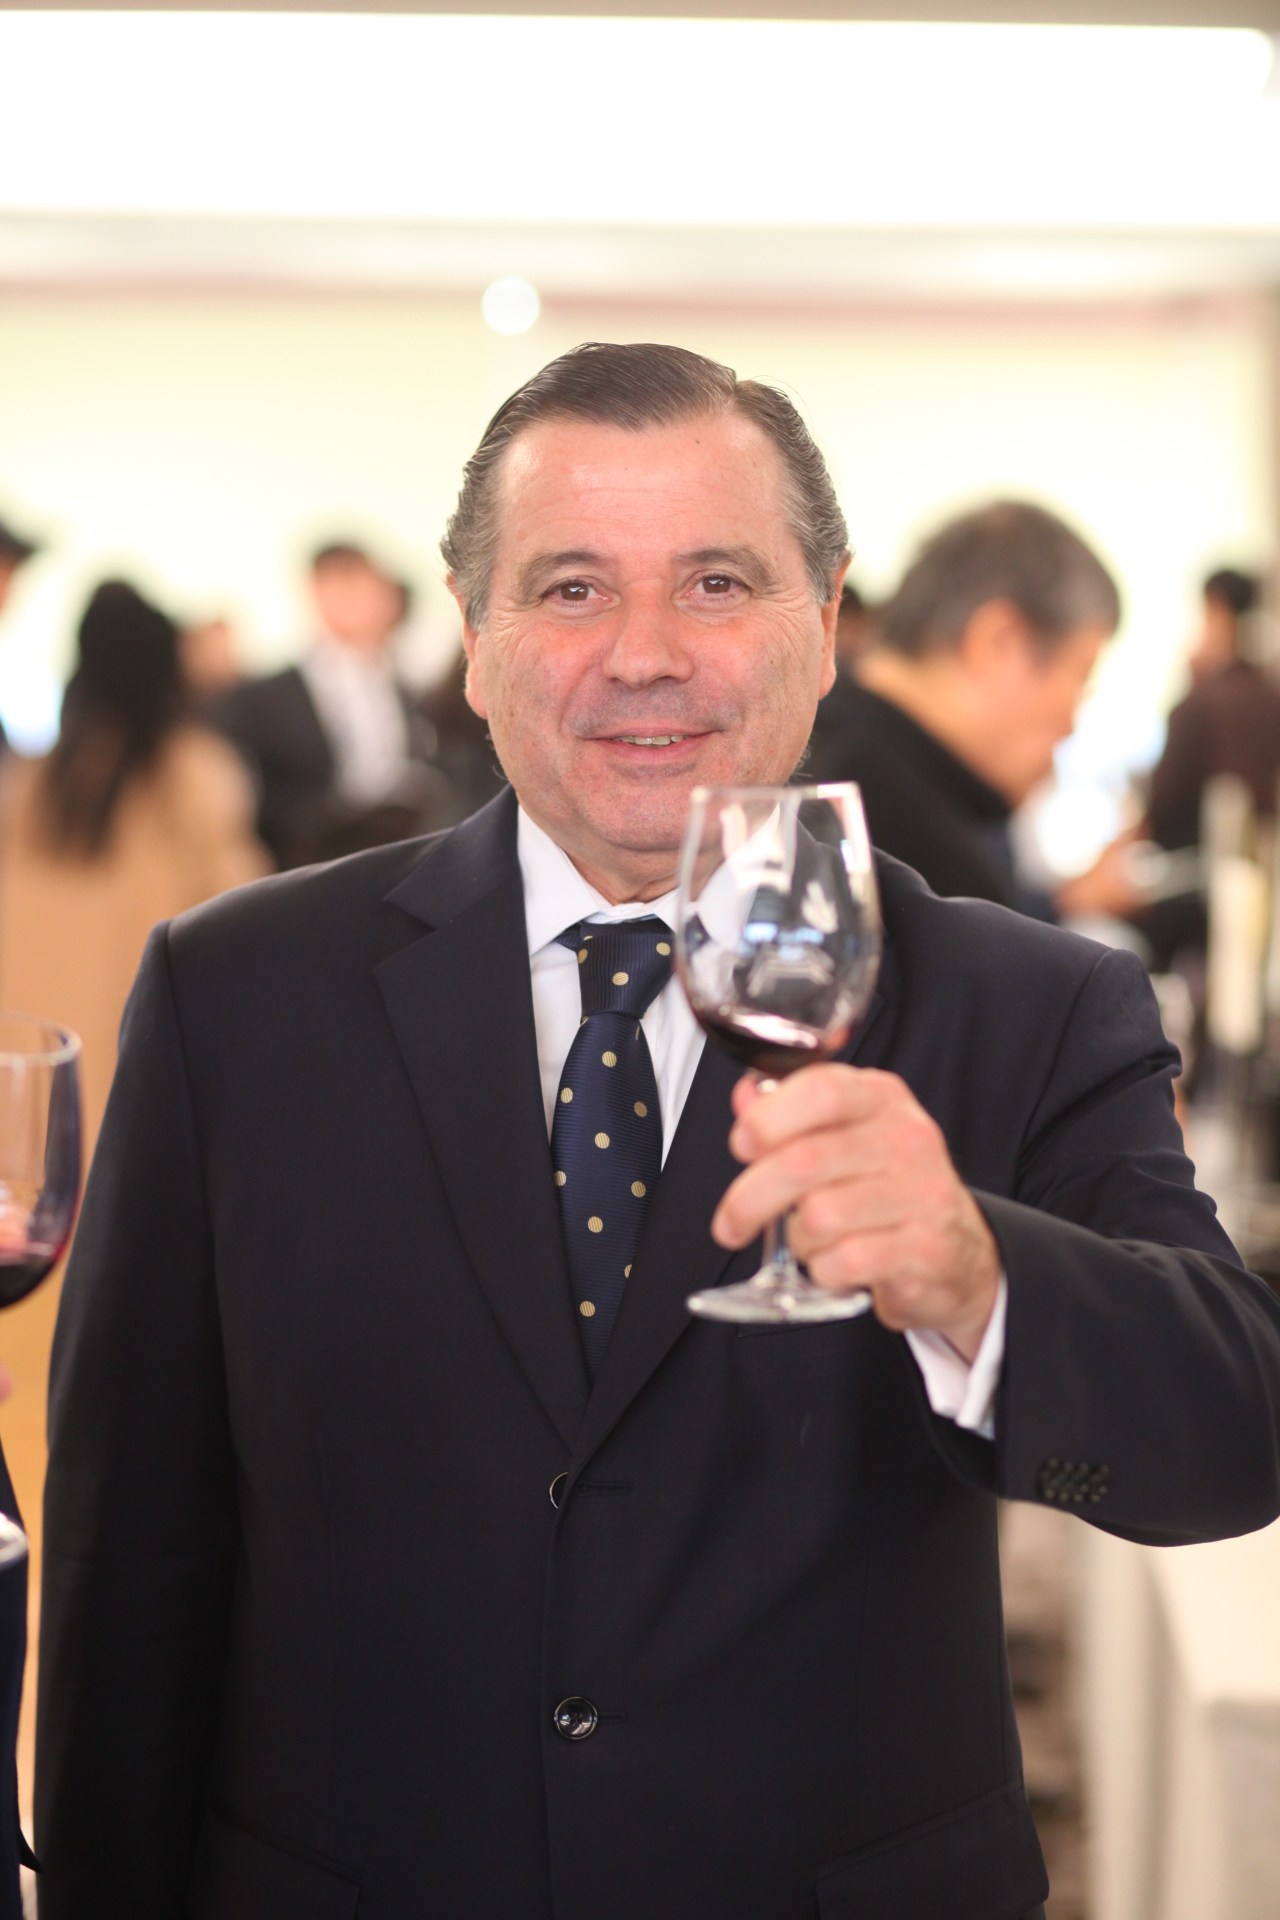 Argentine Ambassador to South Korea Alfredo Carlos Bascou poses at the 9th Wines of Argentina event on Tuesday in central Seoul. (Embassy of Argentina in Seoul)